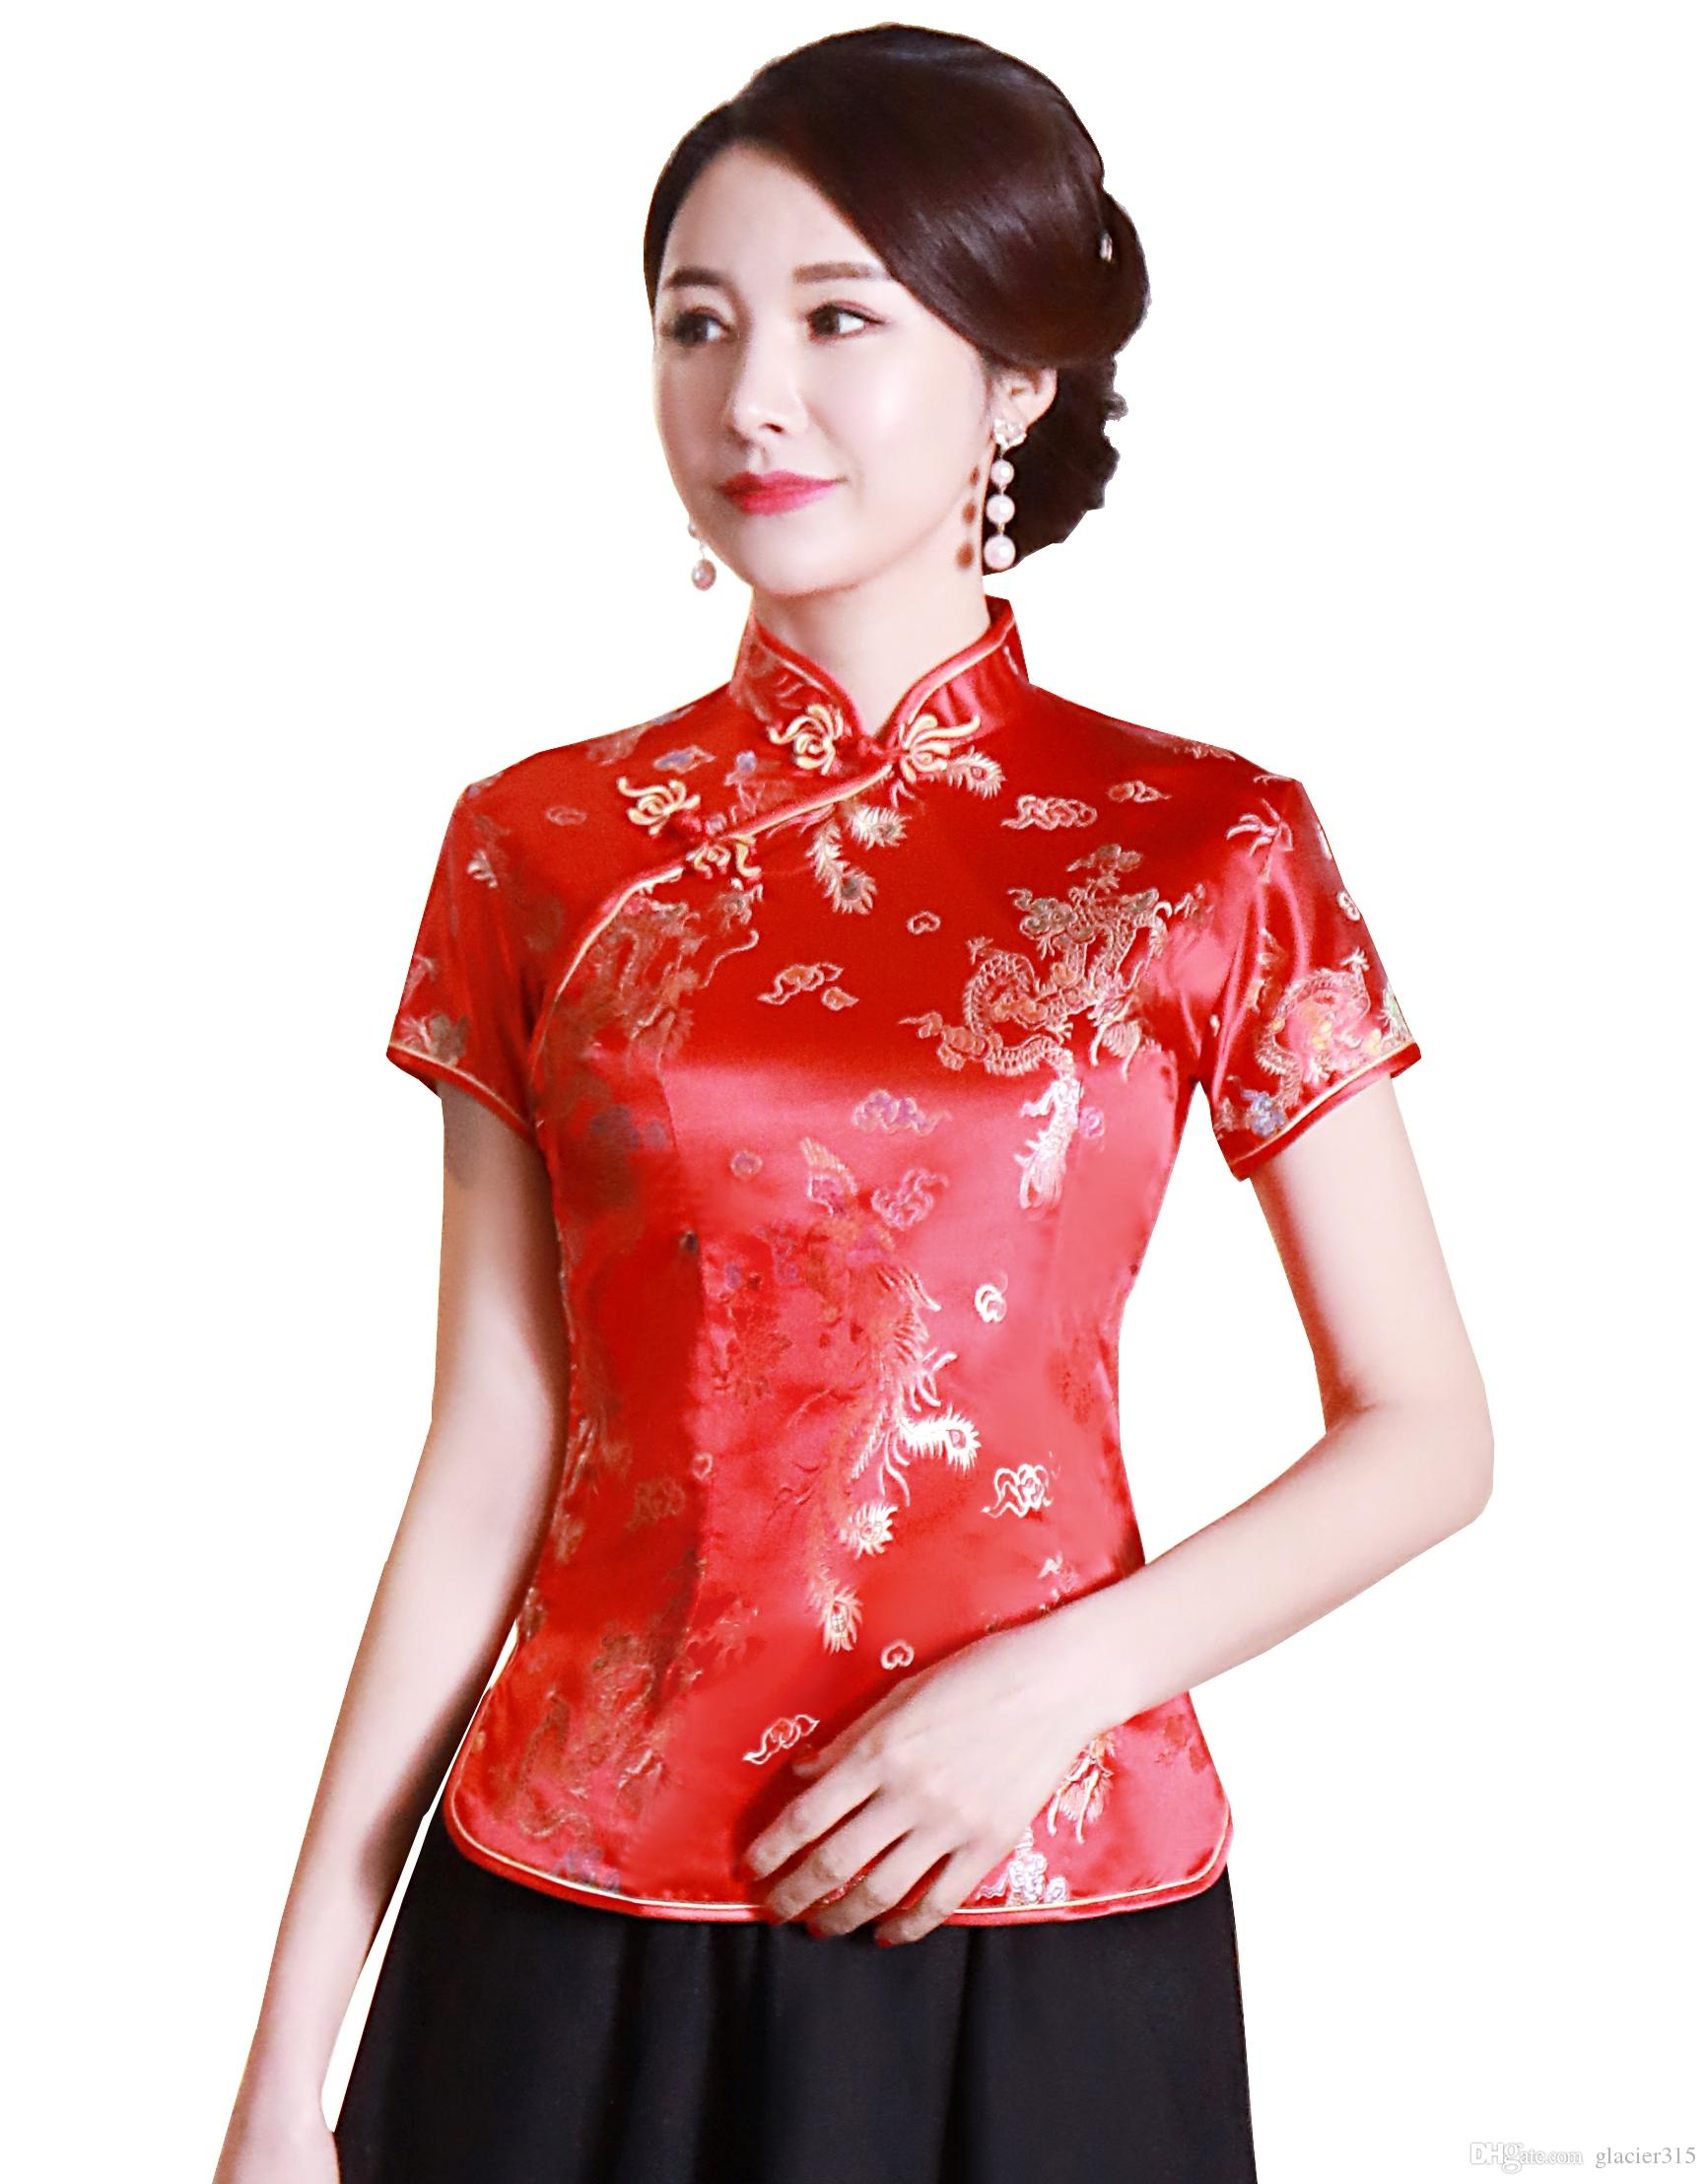 c125b714e1901 2019 Shanghai Story Women S Cheongsam Top Traditional Chinese Blouses Satin  Top Dragon And Phoenix Blouse Top Flower Embroidery Qipao Shirt From  Glacier315